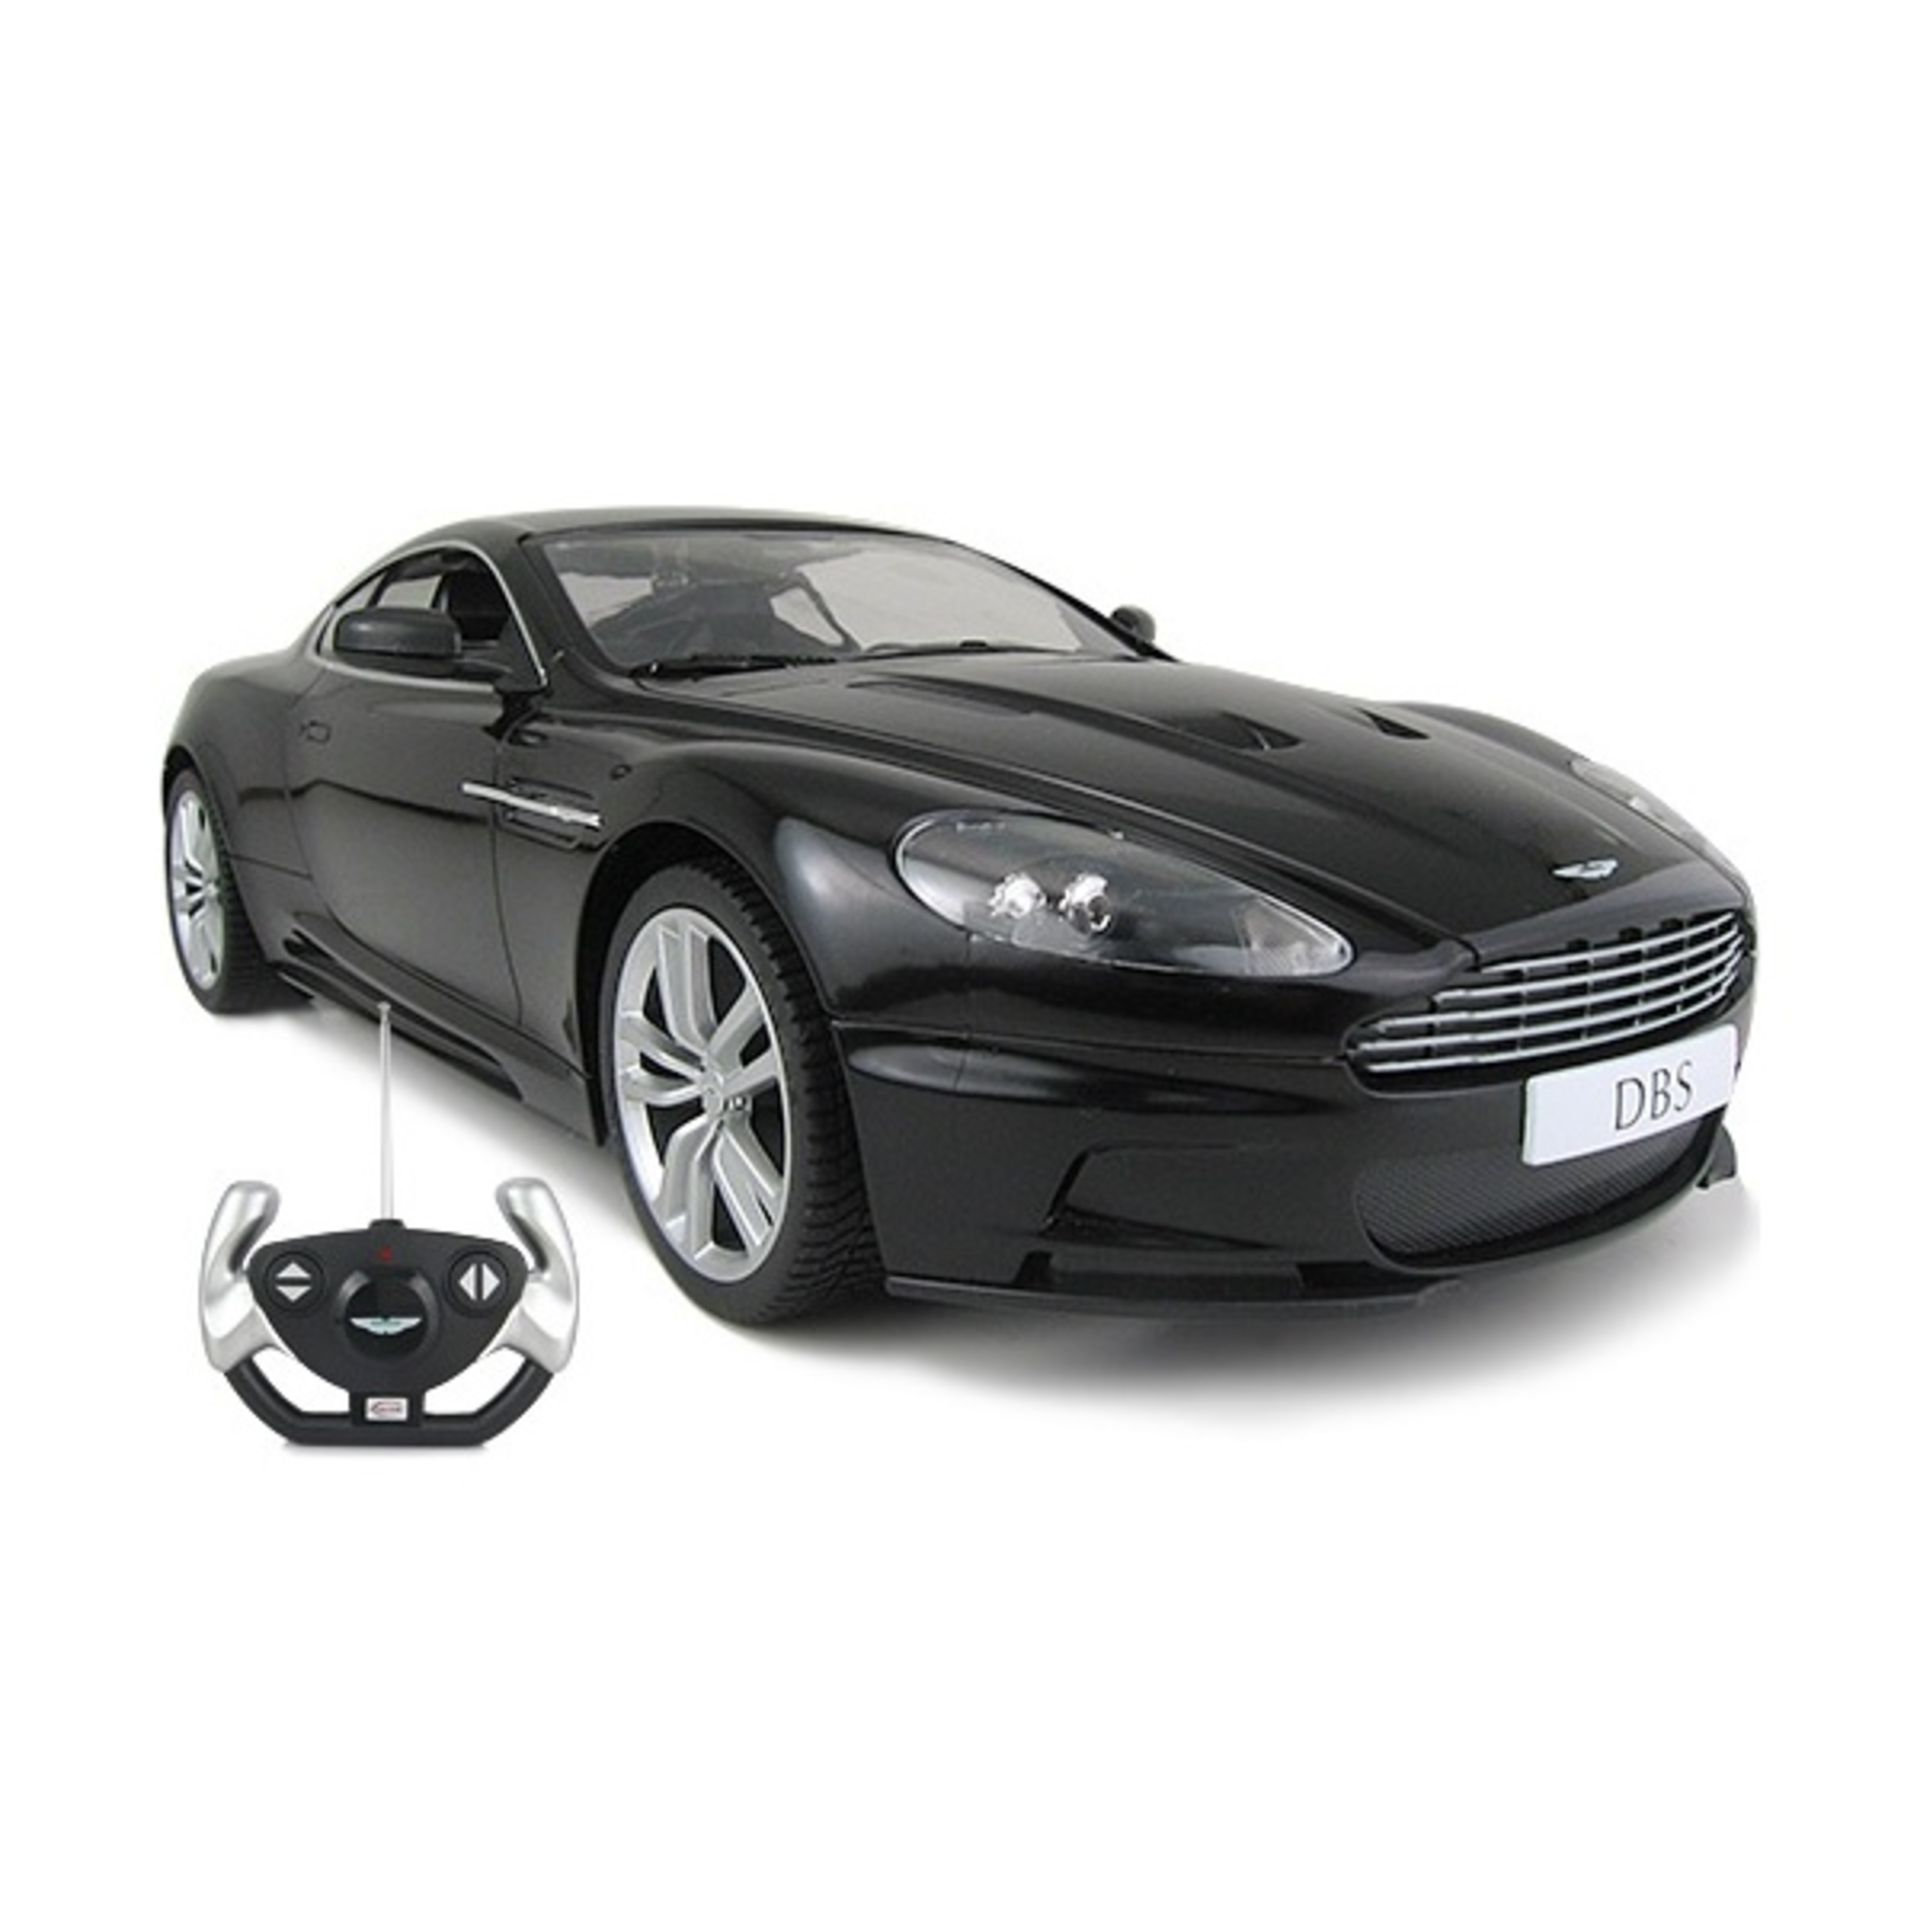 Lot 11664 - V Brand New Aston Martin DBS Coupe 1/10 Scale (Very Big) - Radio Control - Assorted Black & Silver